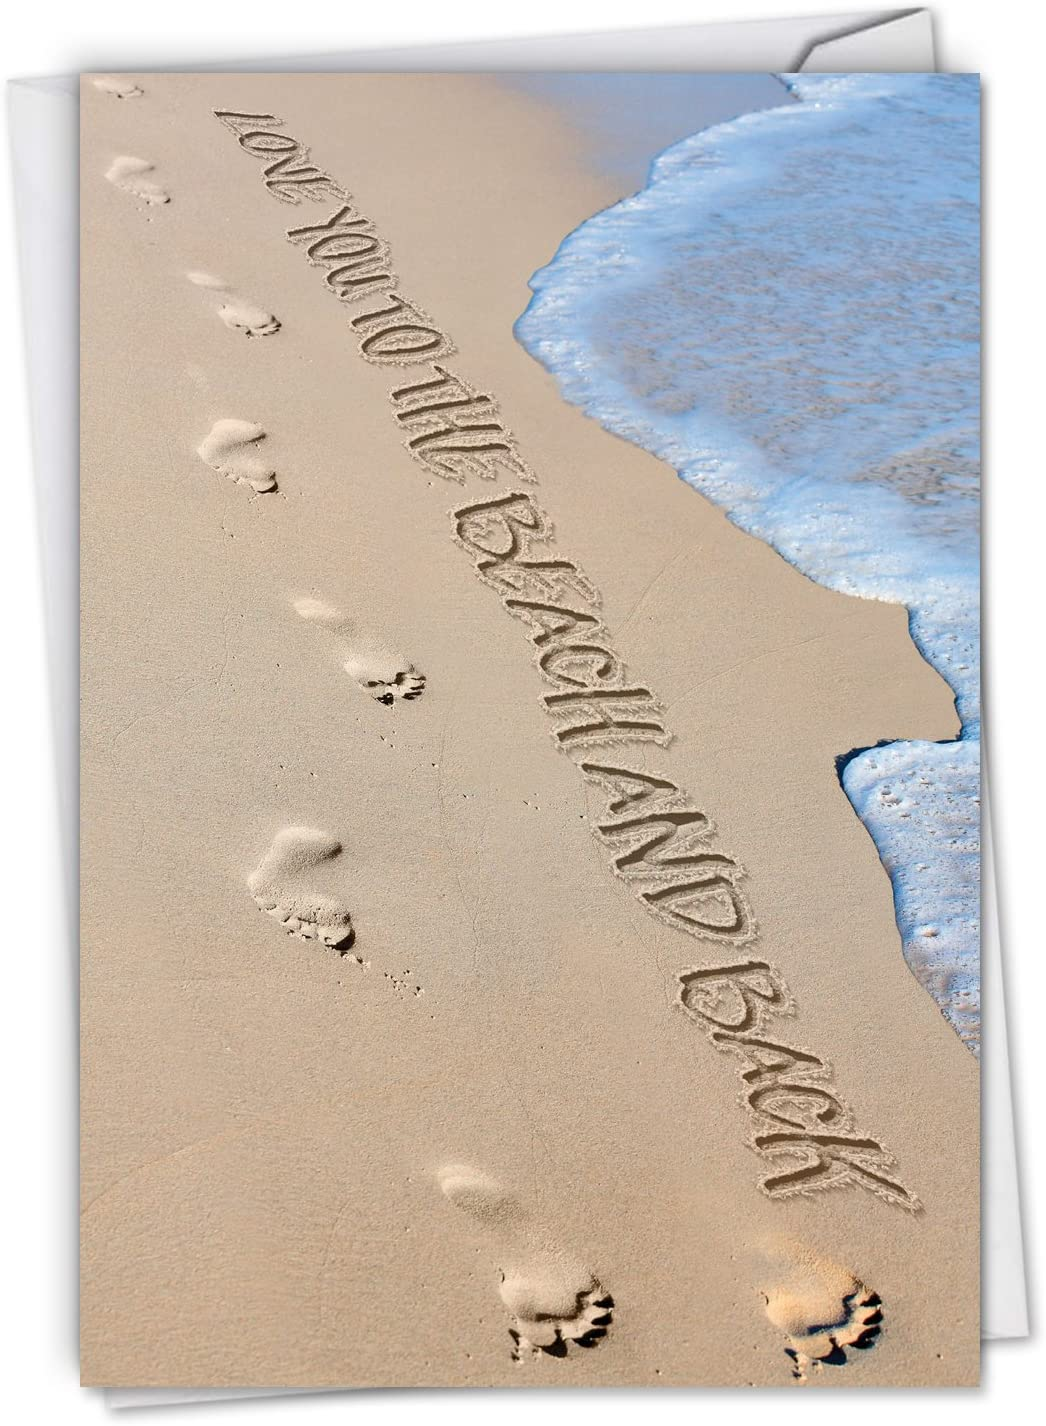 Life's a Beach - Romantic All Occasion Blank Card with Envelope (4.63 x 6.75 Inch) - Message in the Sand All-Occasion Greeting Note Card - Scenic Seascapes, Stationery Notecard C6328EOCB